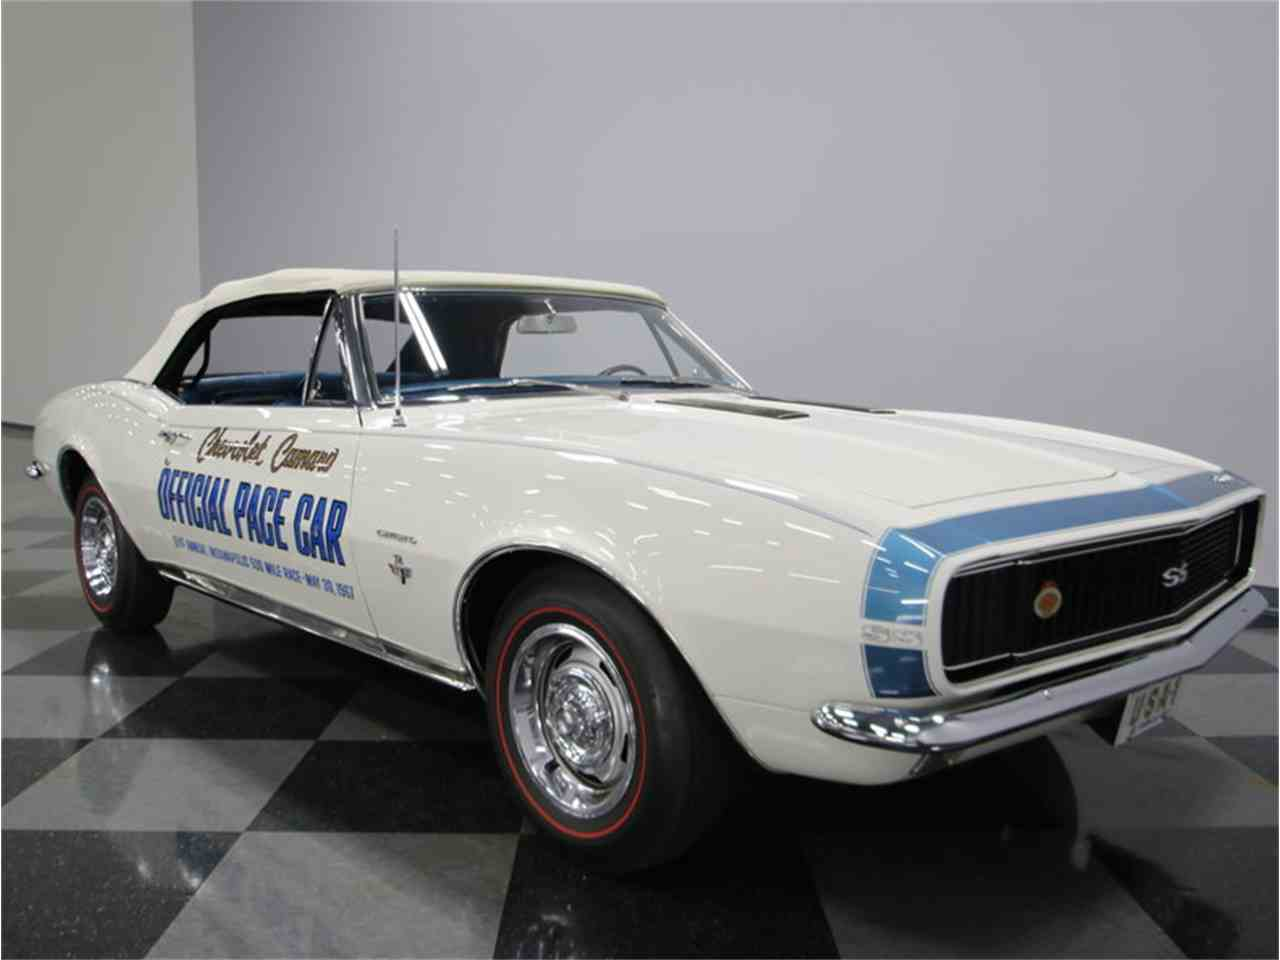 Large Picture of Classic '67 Chevrolet Camaro Indianapolis 500 Pace Car located in Tennessee - $99,995.00 - JI5M